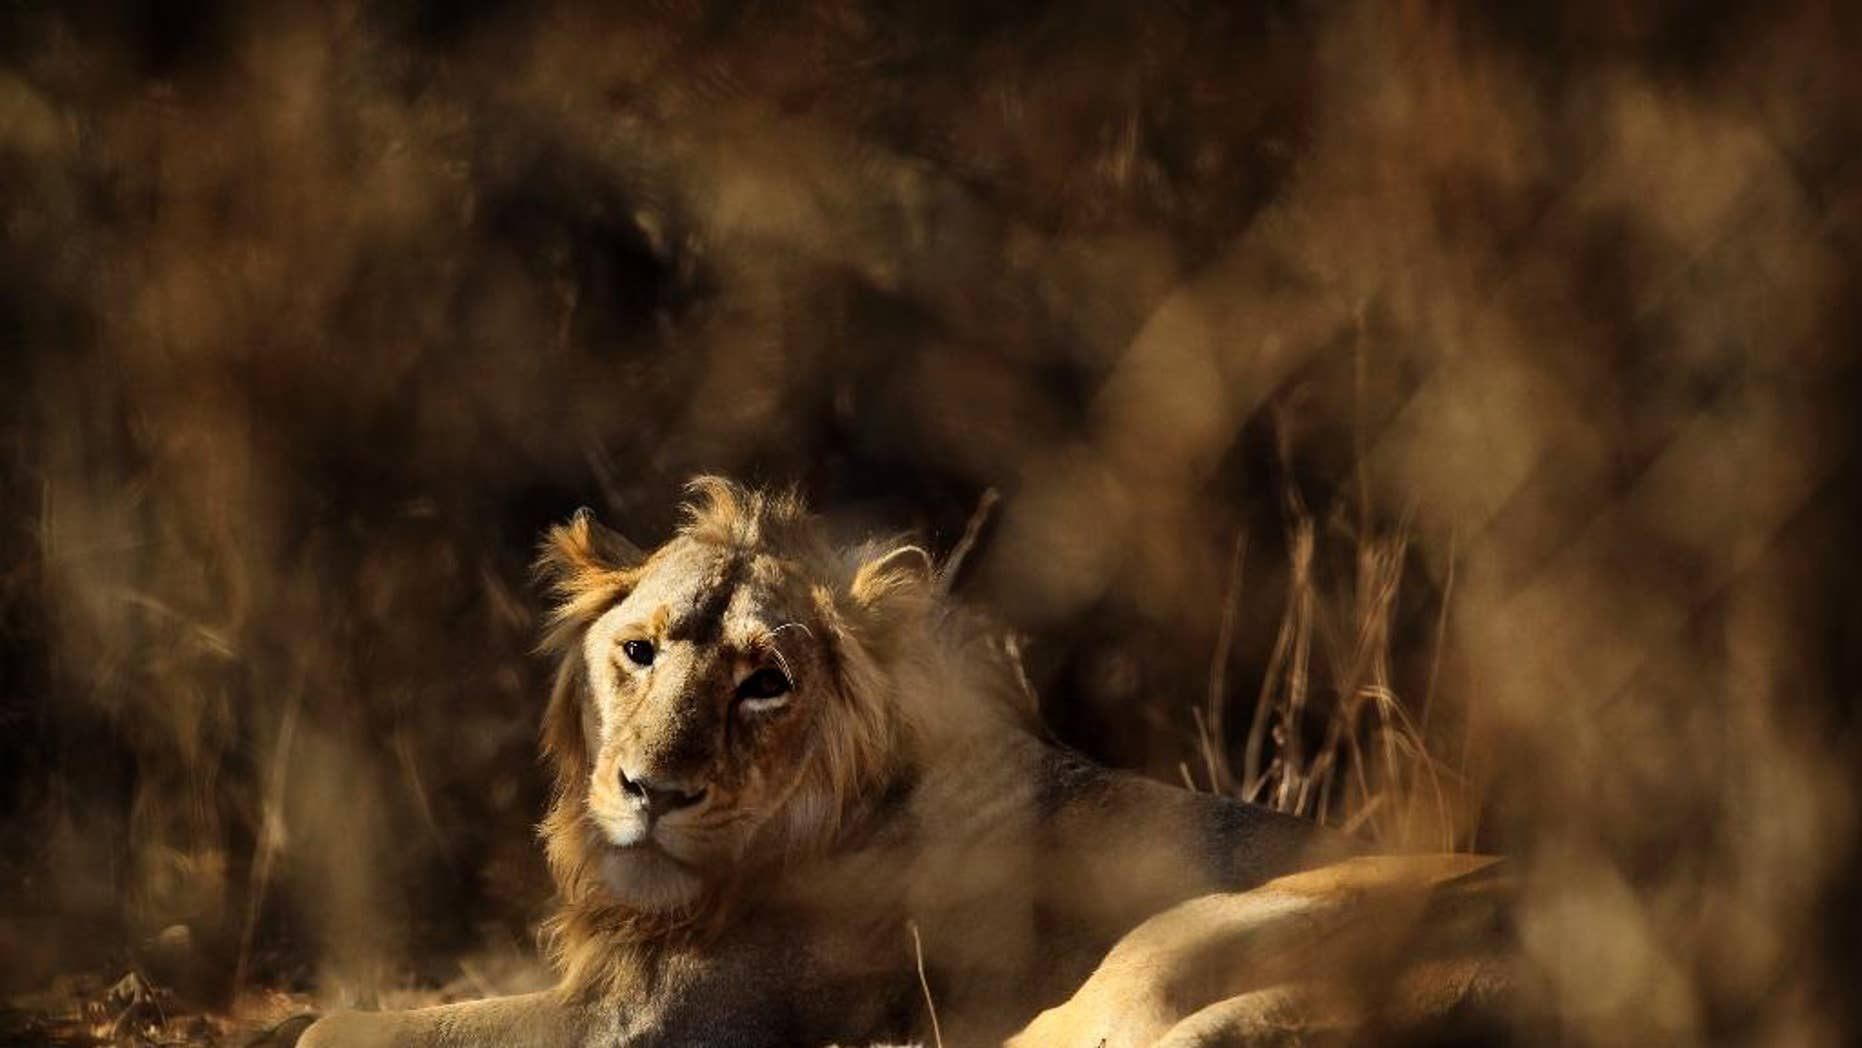 In this Saturday, March 24, 2012 photo, a lion rests at the Gir Sanctuary Forest reserve in the western Indian state of Gujarat, India. Forest reserve officials have sentenced three lions to life in captivity after they were found to have eaten humans. (AP Photo/Rajanish Kakade, File)